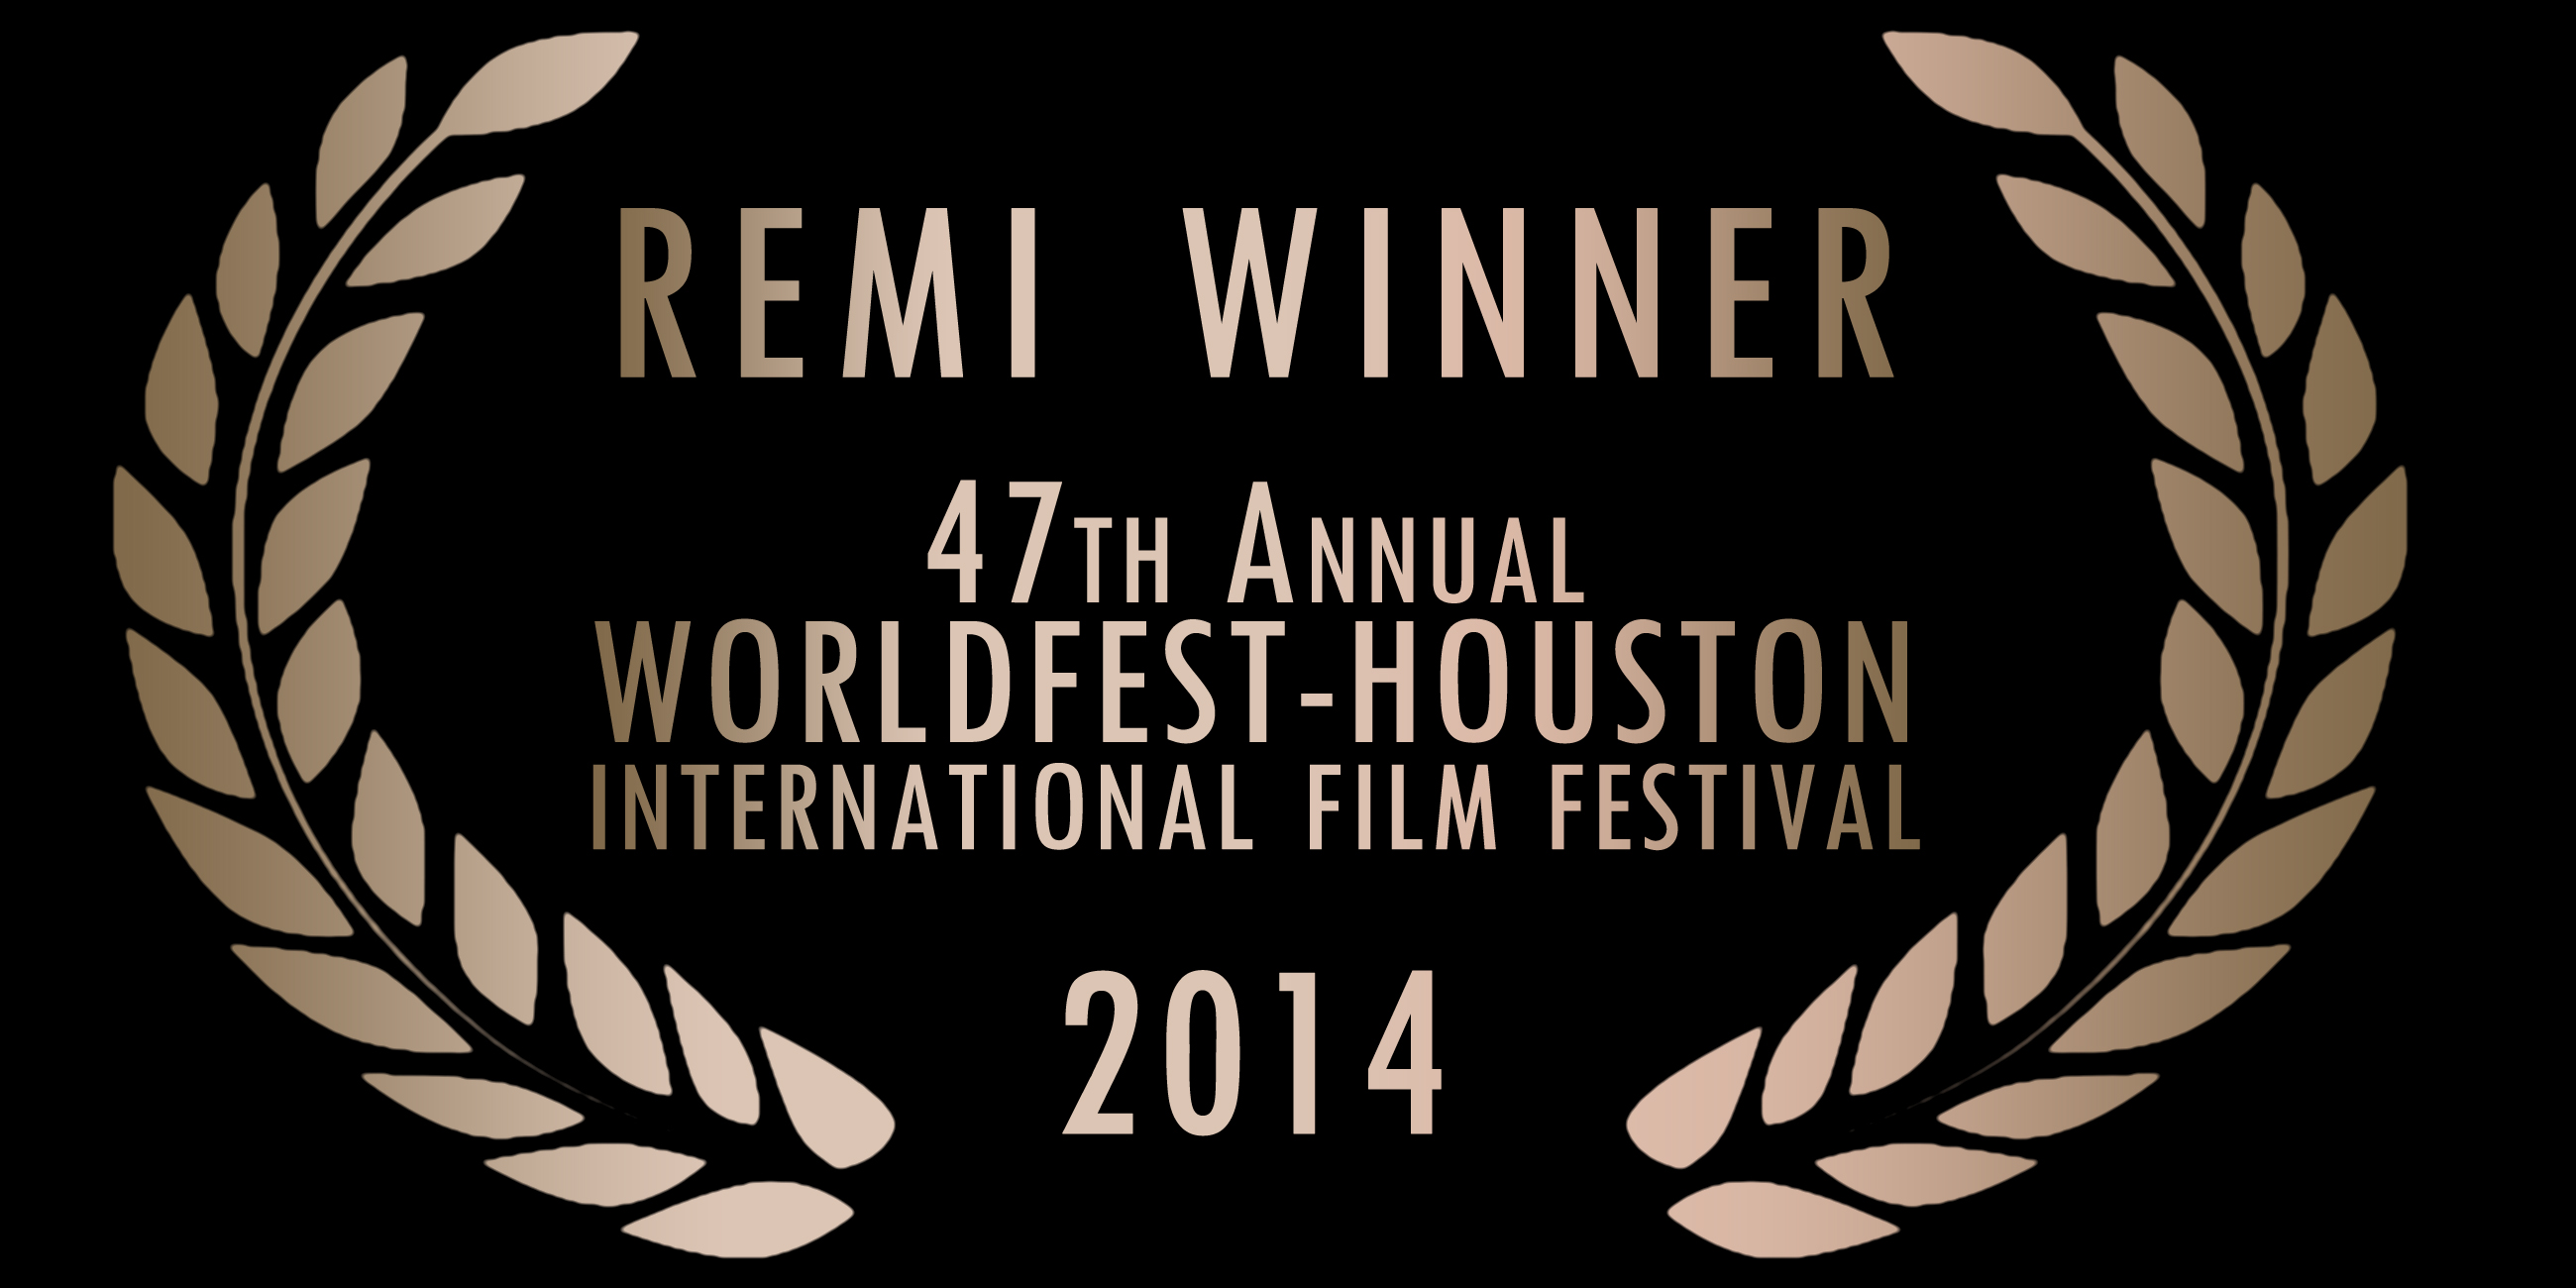 REMI WINNER 2014LAUREL